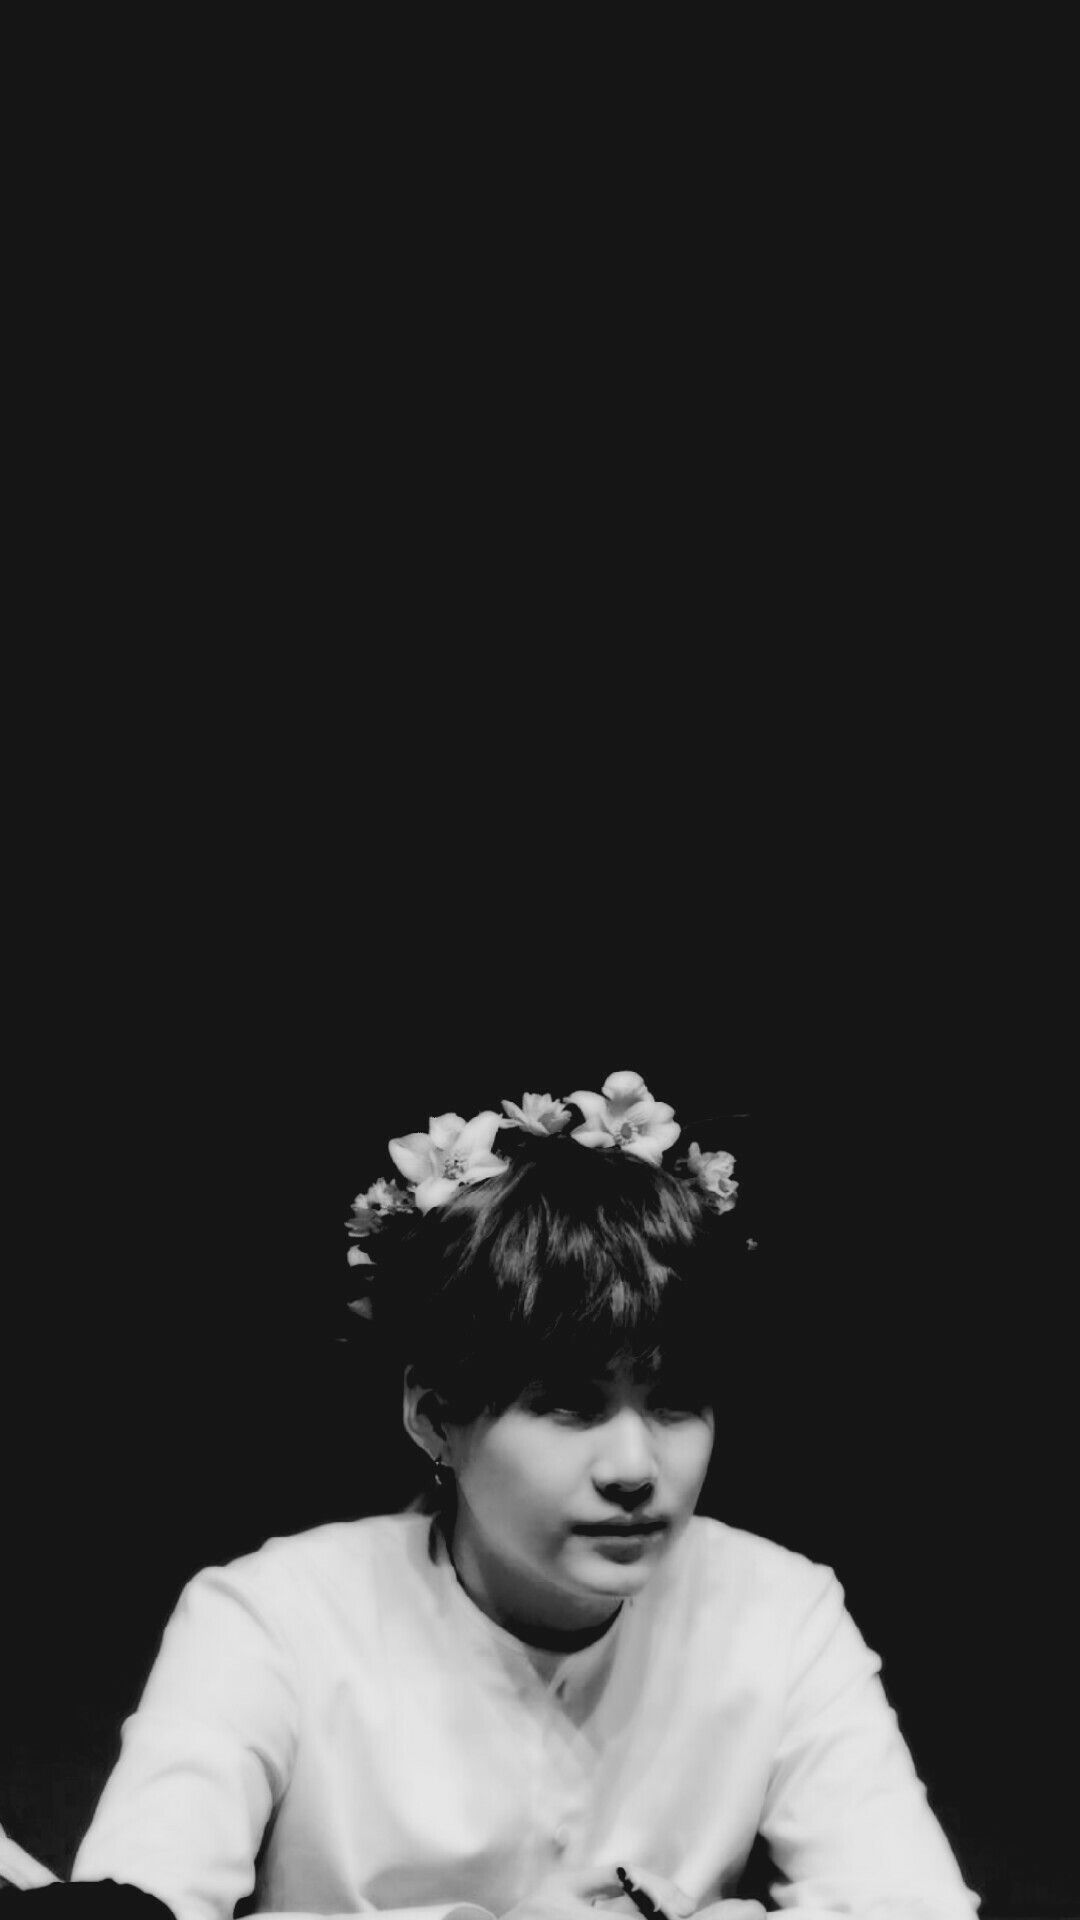 Bts Black And White Wallpapers Top Free Bts Black And White Backgrounds Wallpaperaccess